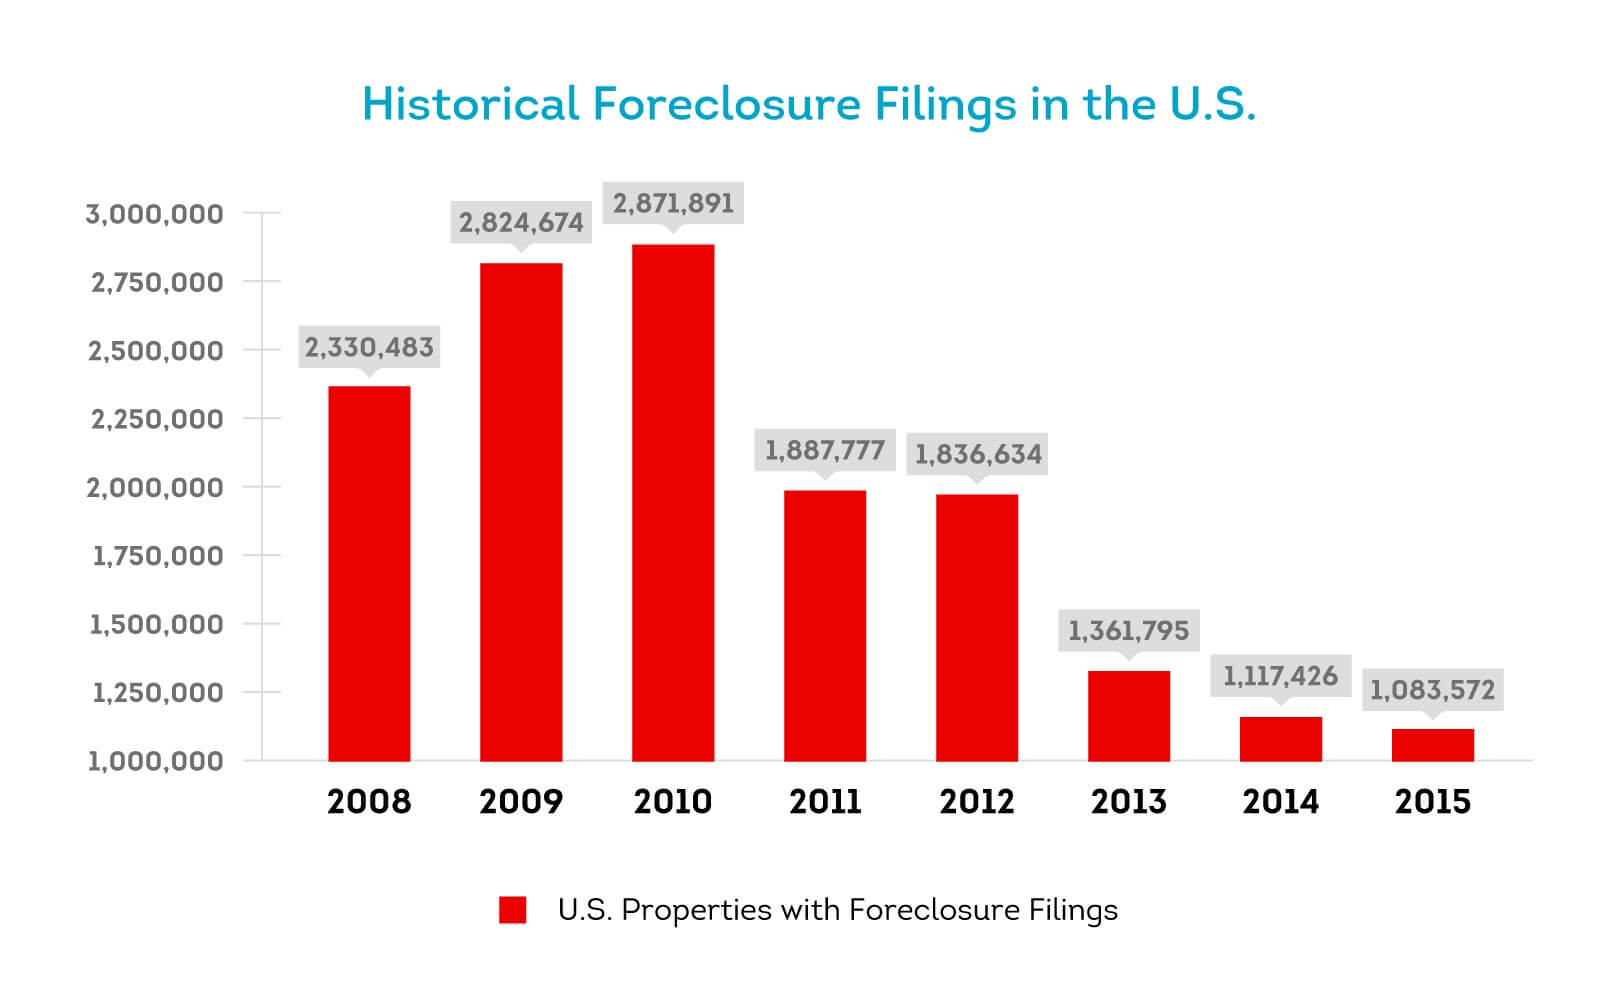 Foreclosure rates have decreased steadily since 2009